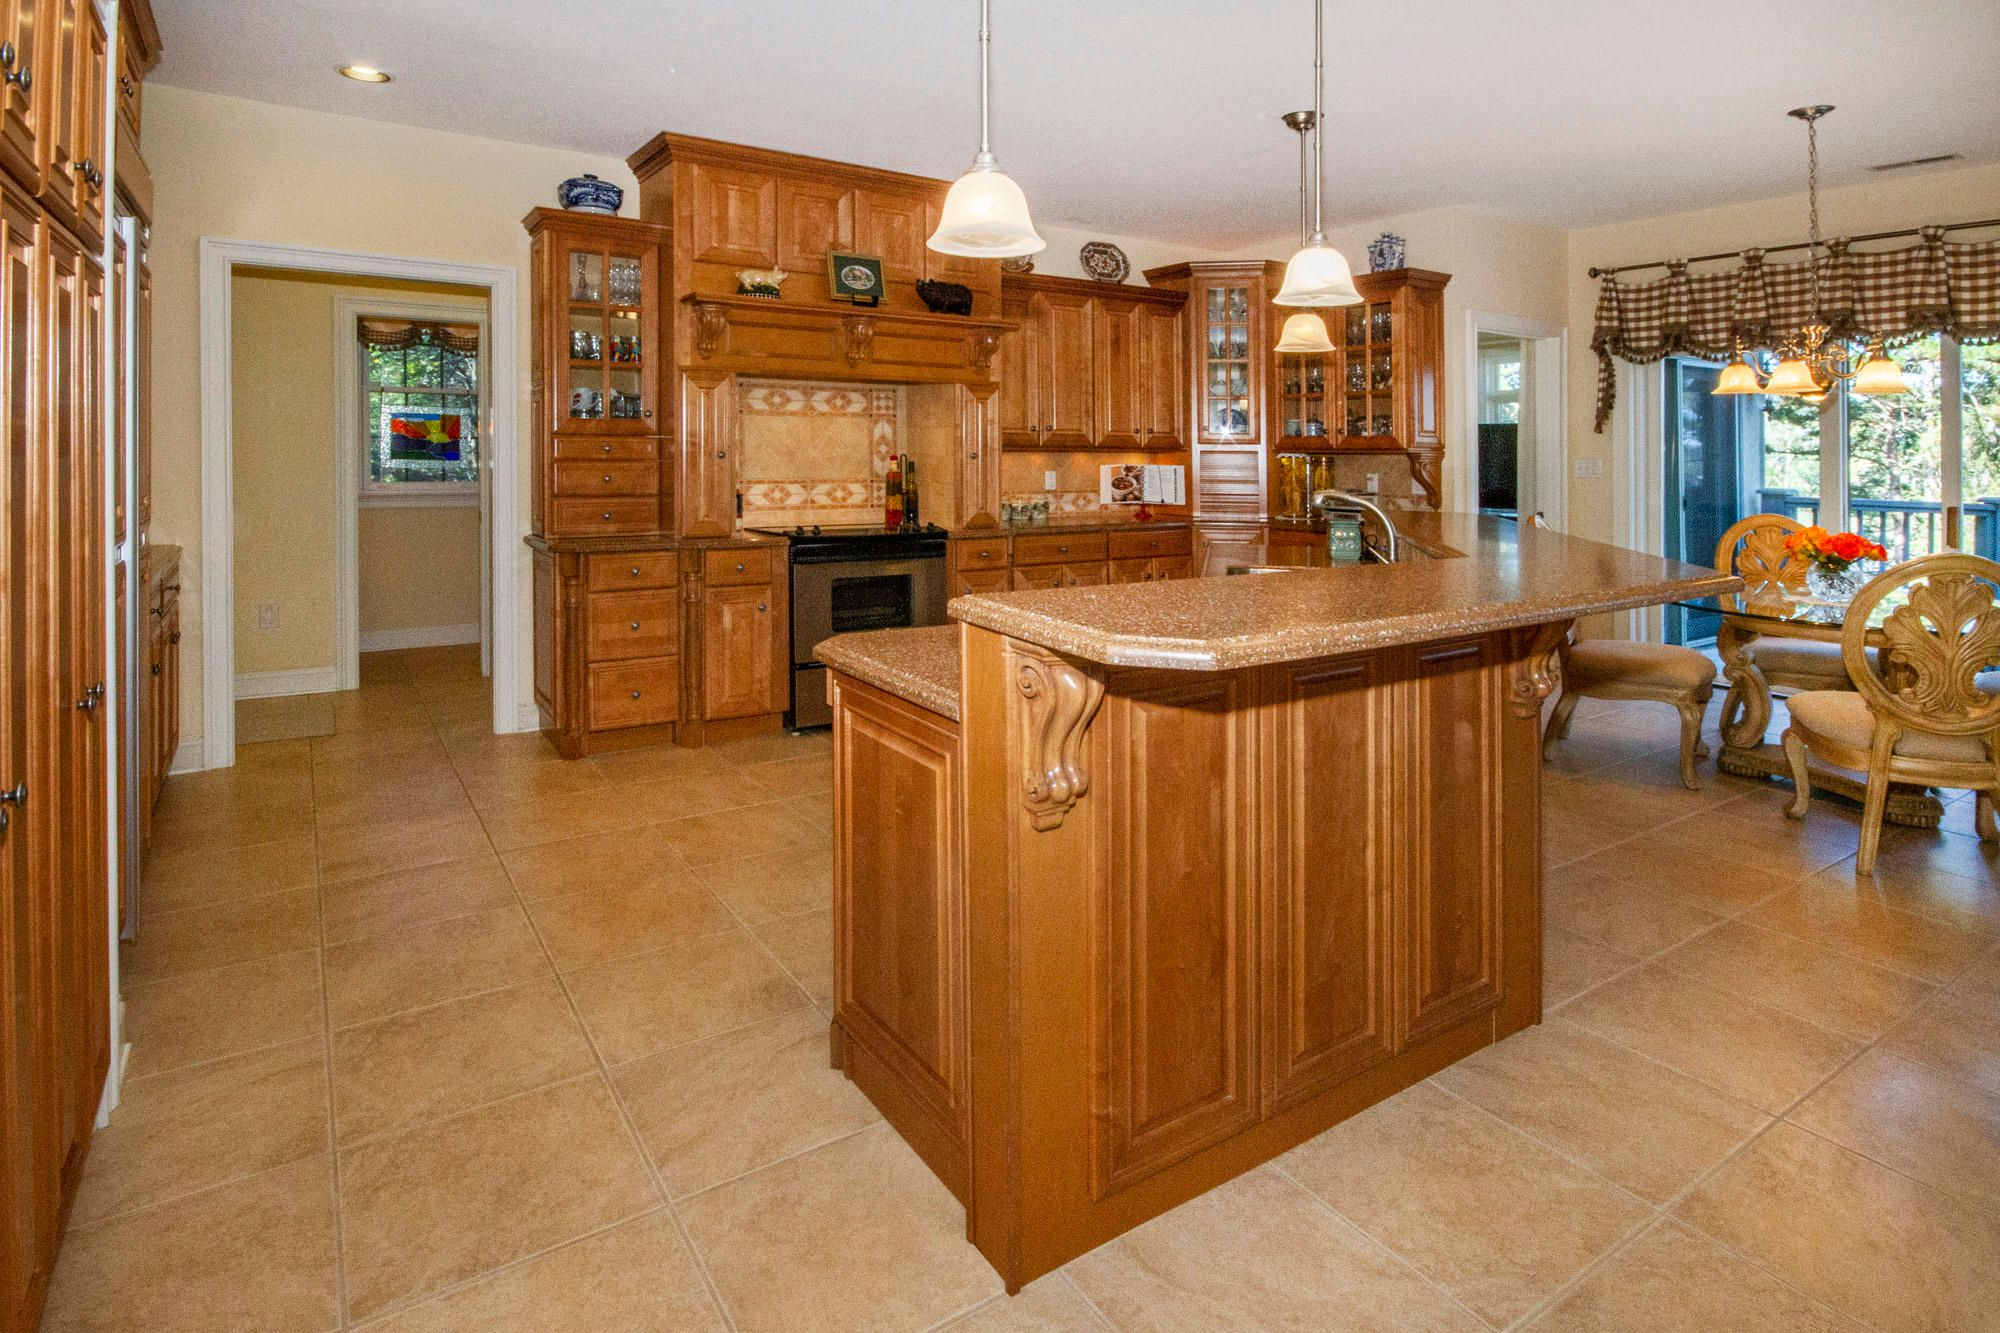 Gorgeous Cabinetry!